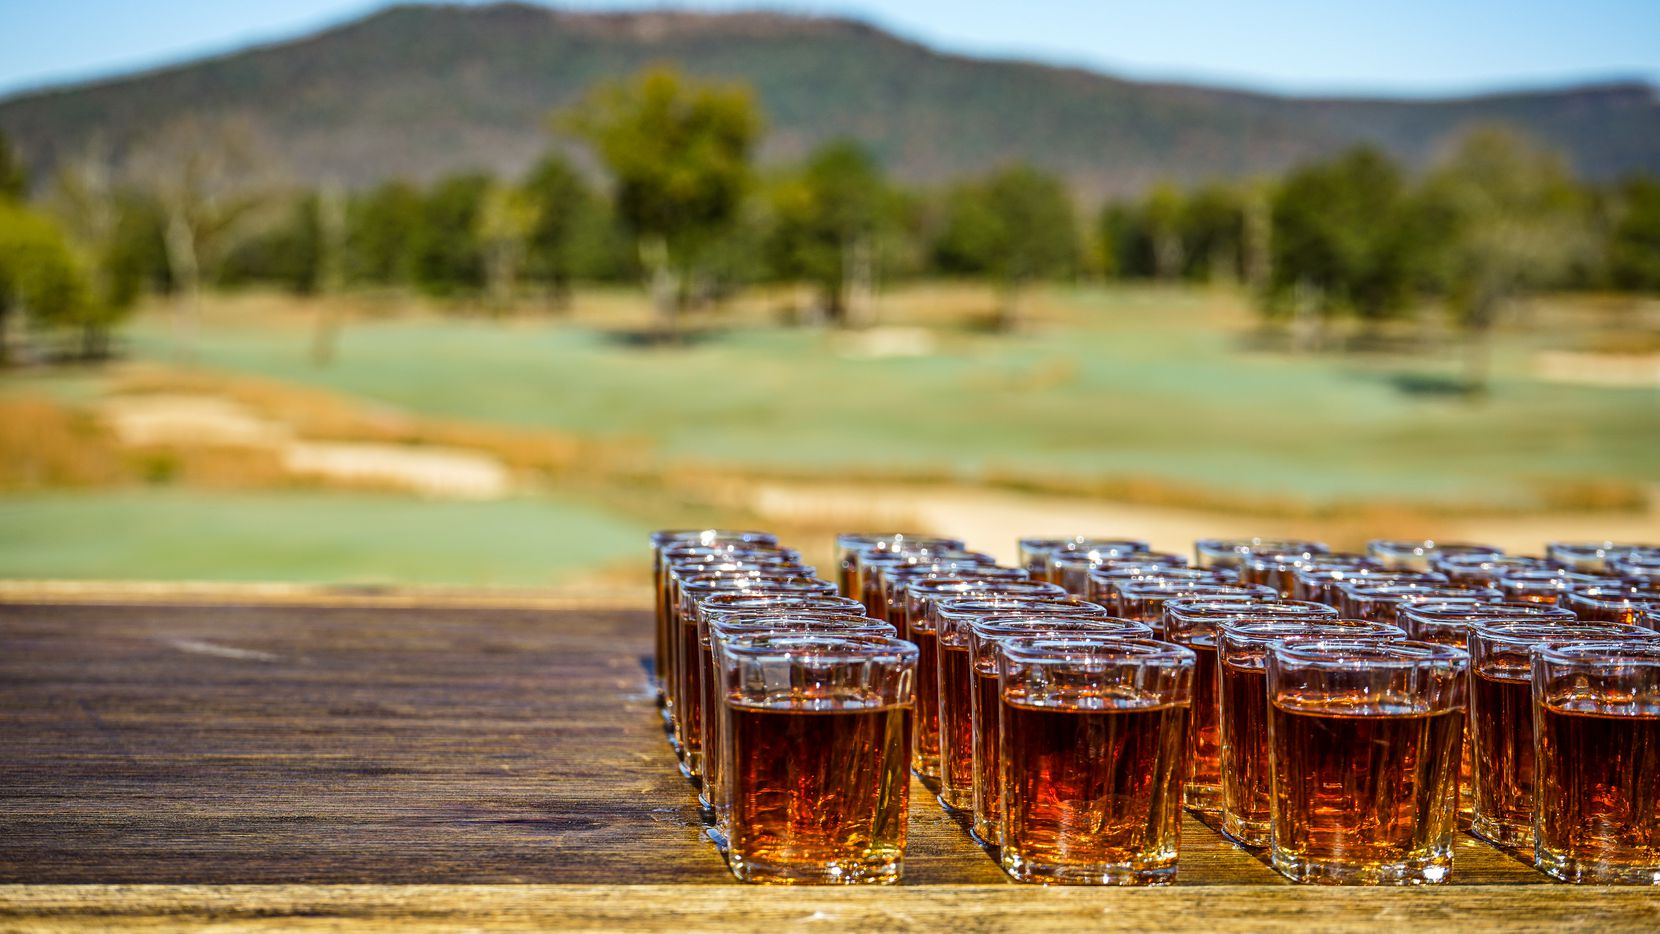 As the story goes, visitors to Sweetens Cove Golf Club in Tennessee would take a shot of whiskey before the first hole. After athletes Peyton Manning, Andy Roddick and others took ownership of Sweetens Cove Golf Club, they decided to have a bourbon made with the Sweetens Cove name. The bourbon becomes available in Texas for the first time starting April 21, 2021.